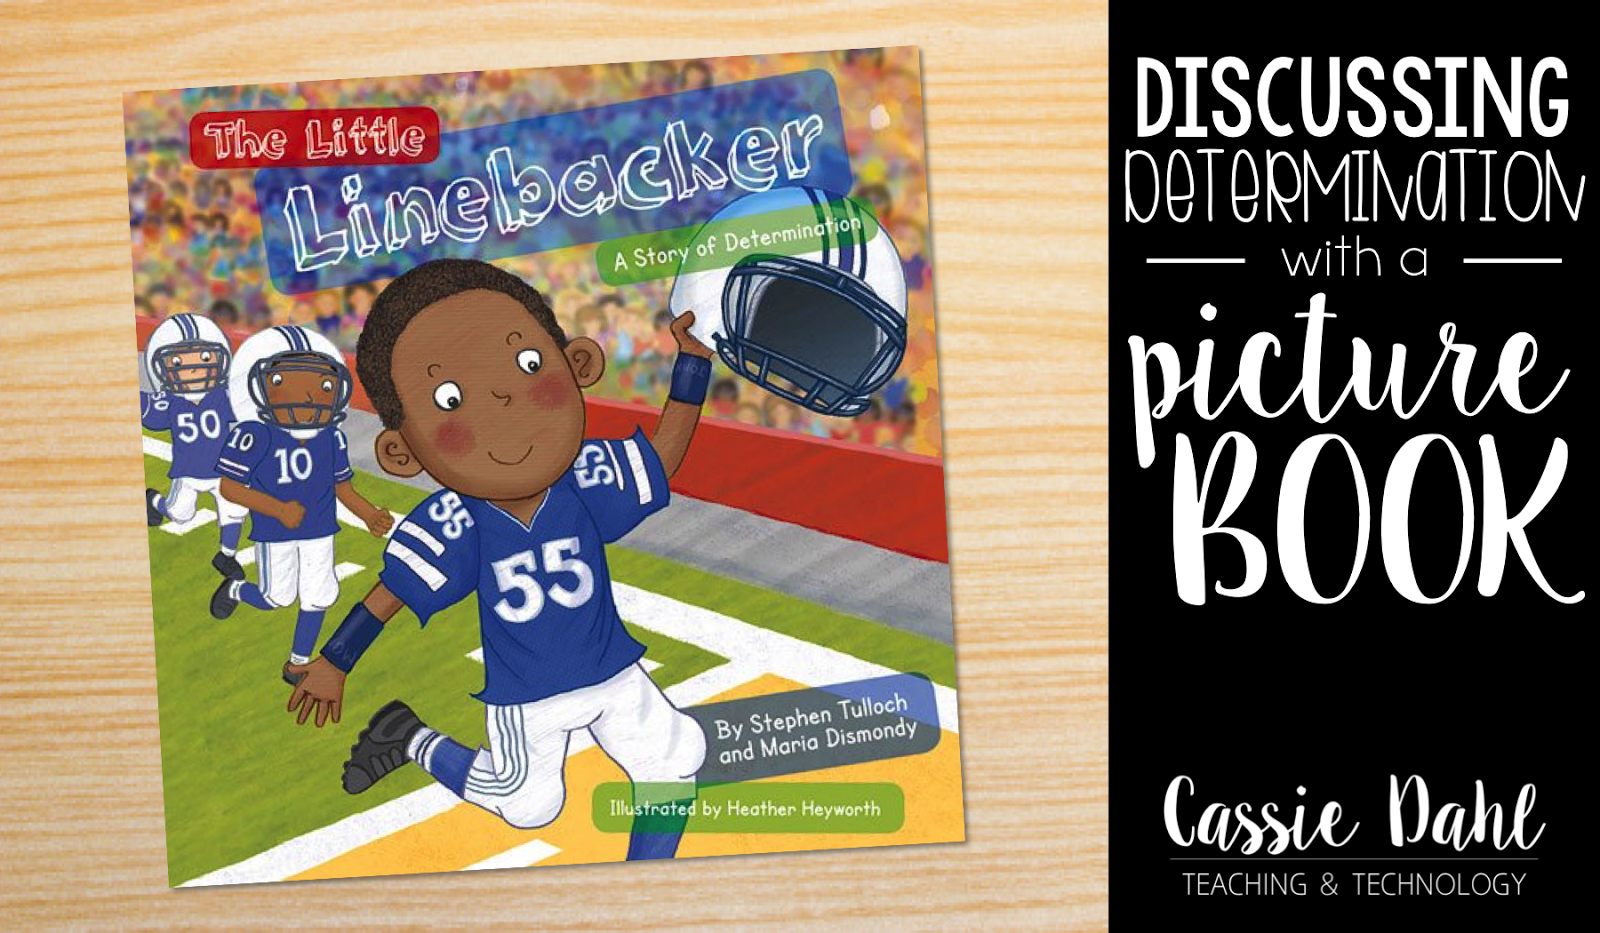 Discussing determination with a picture book is one of my favorite ways to relate to my students!